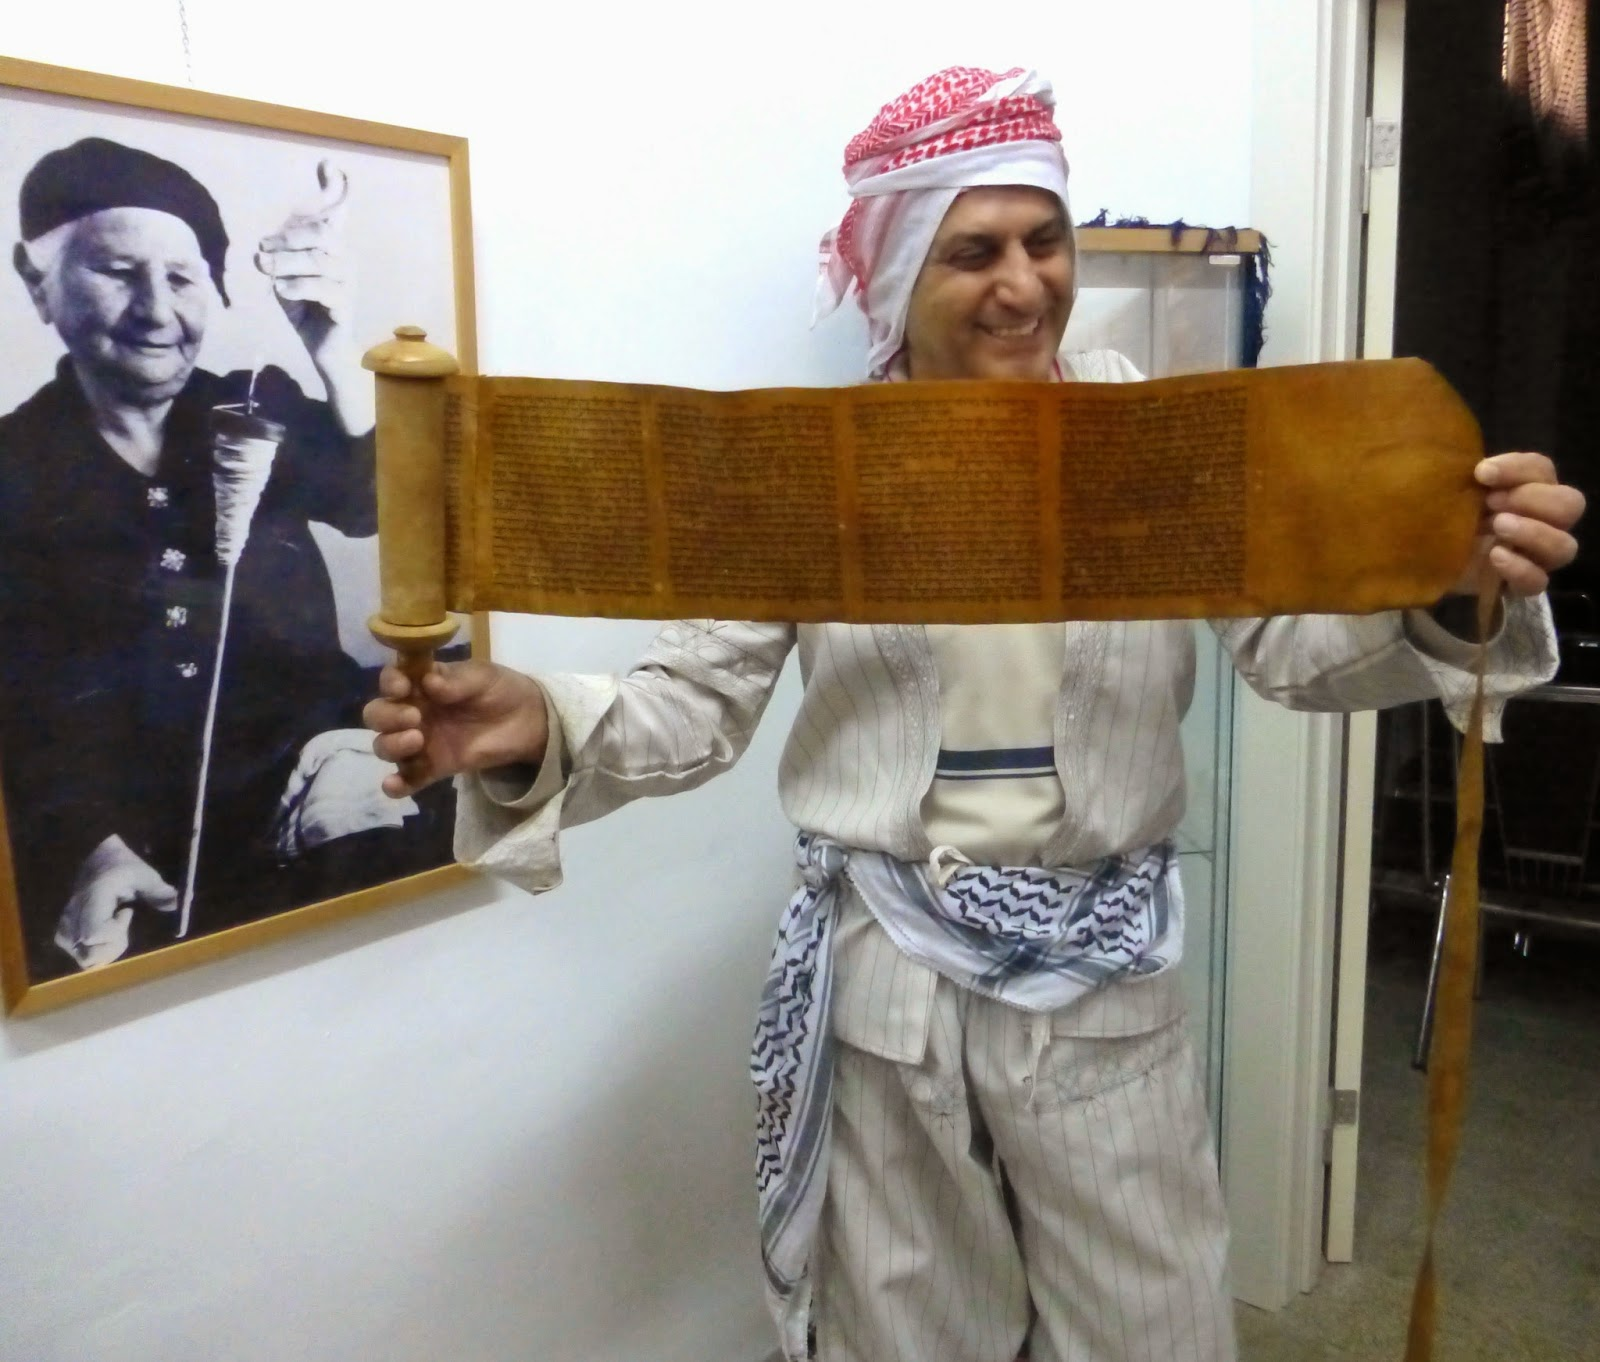 Cultural Heritage: Kurdish Man in Traditional Clothing